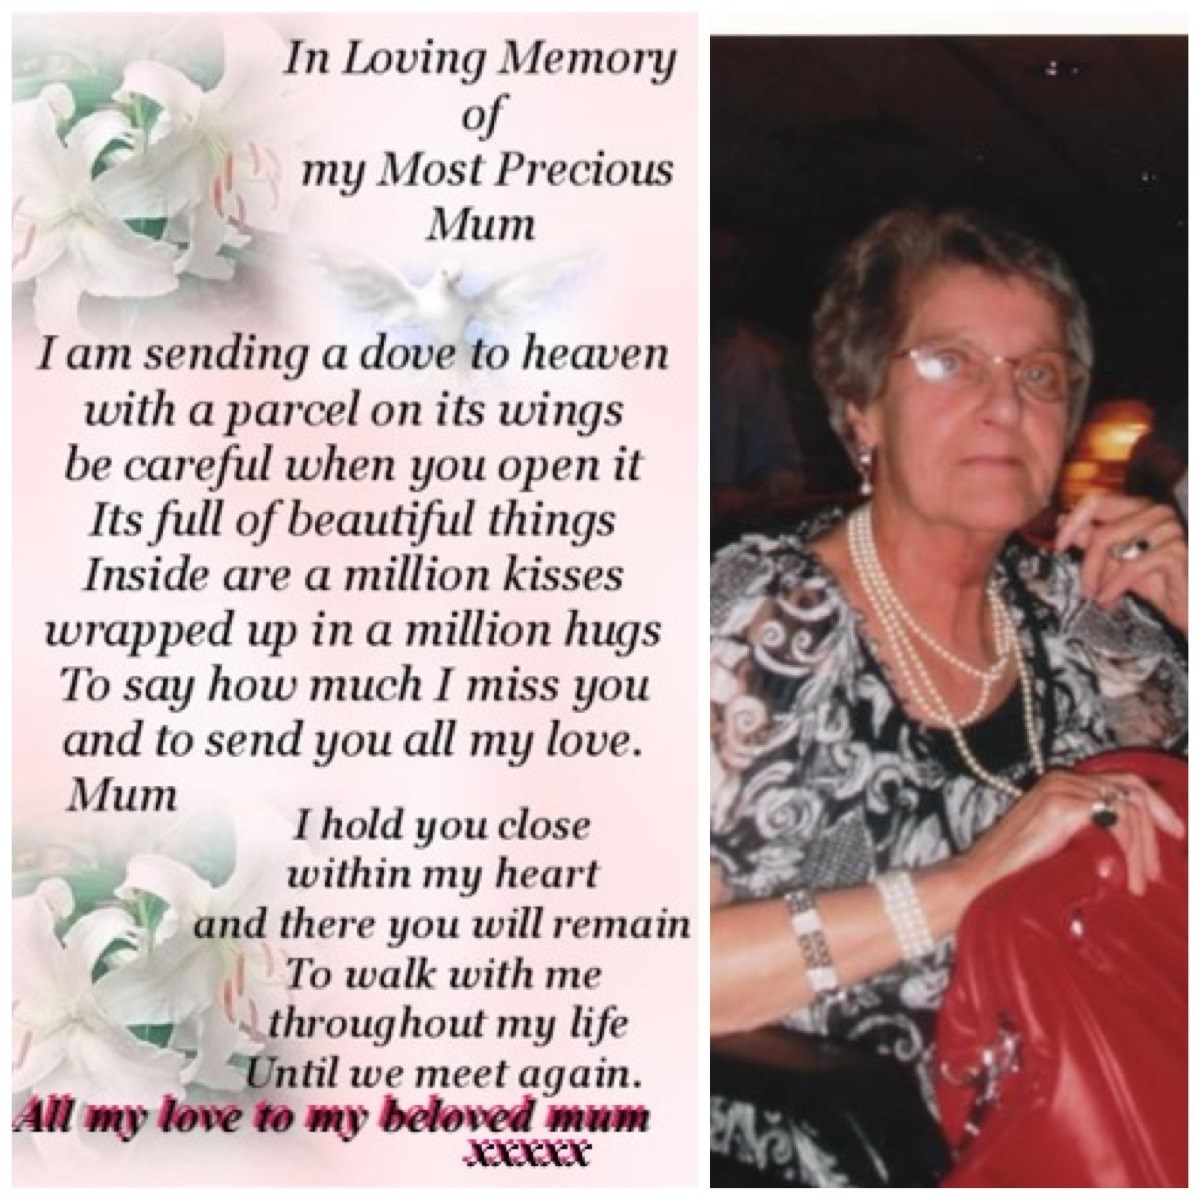 2 years mum seems like a million years since we talked love you to heaven and back xxxx